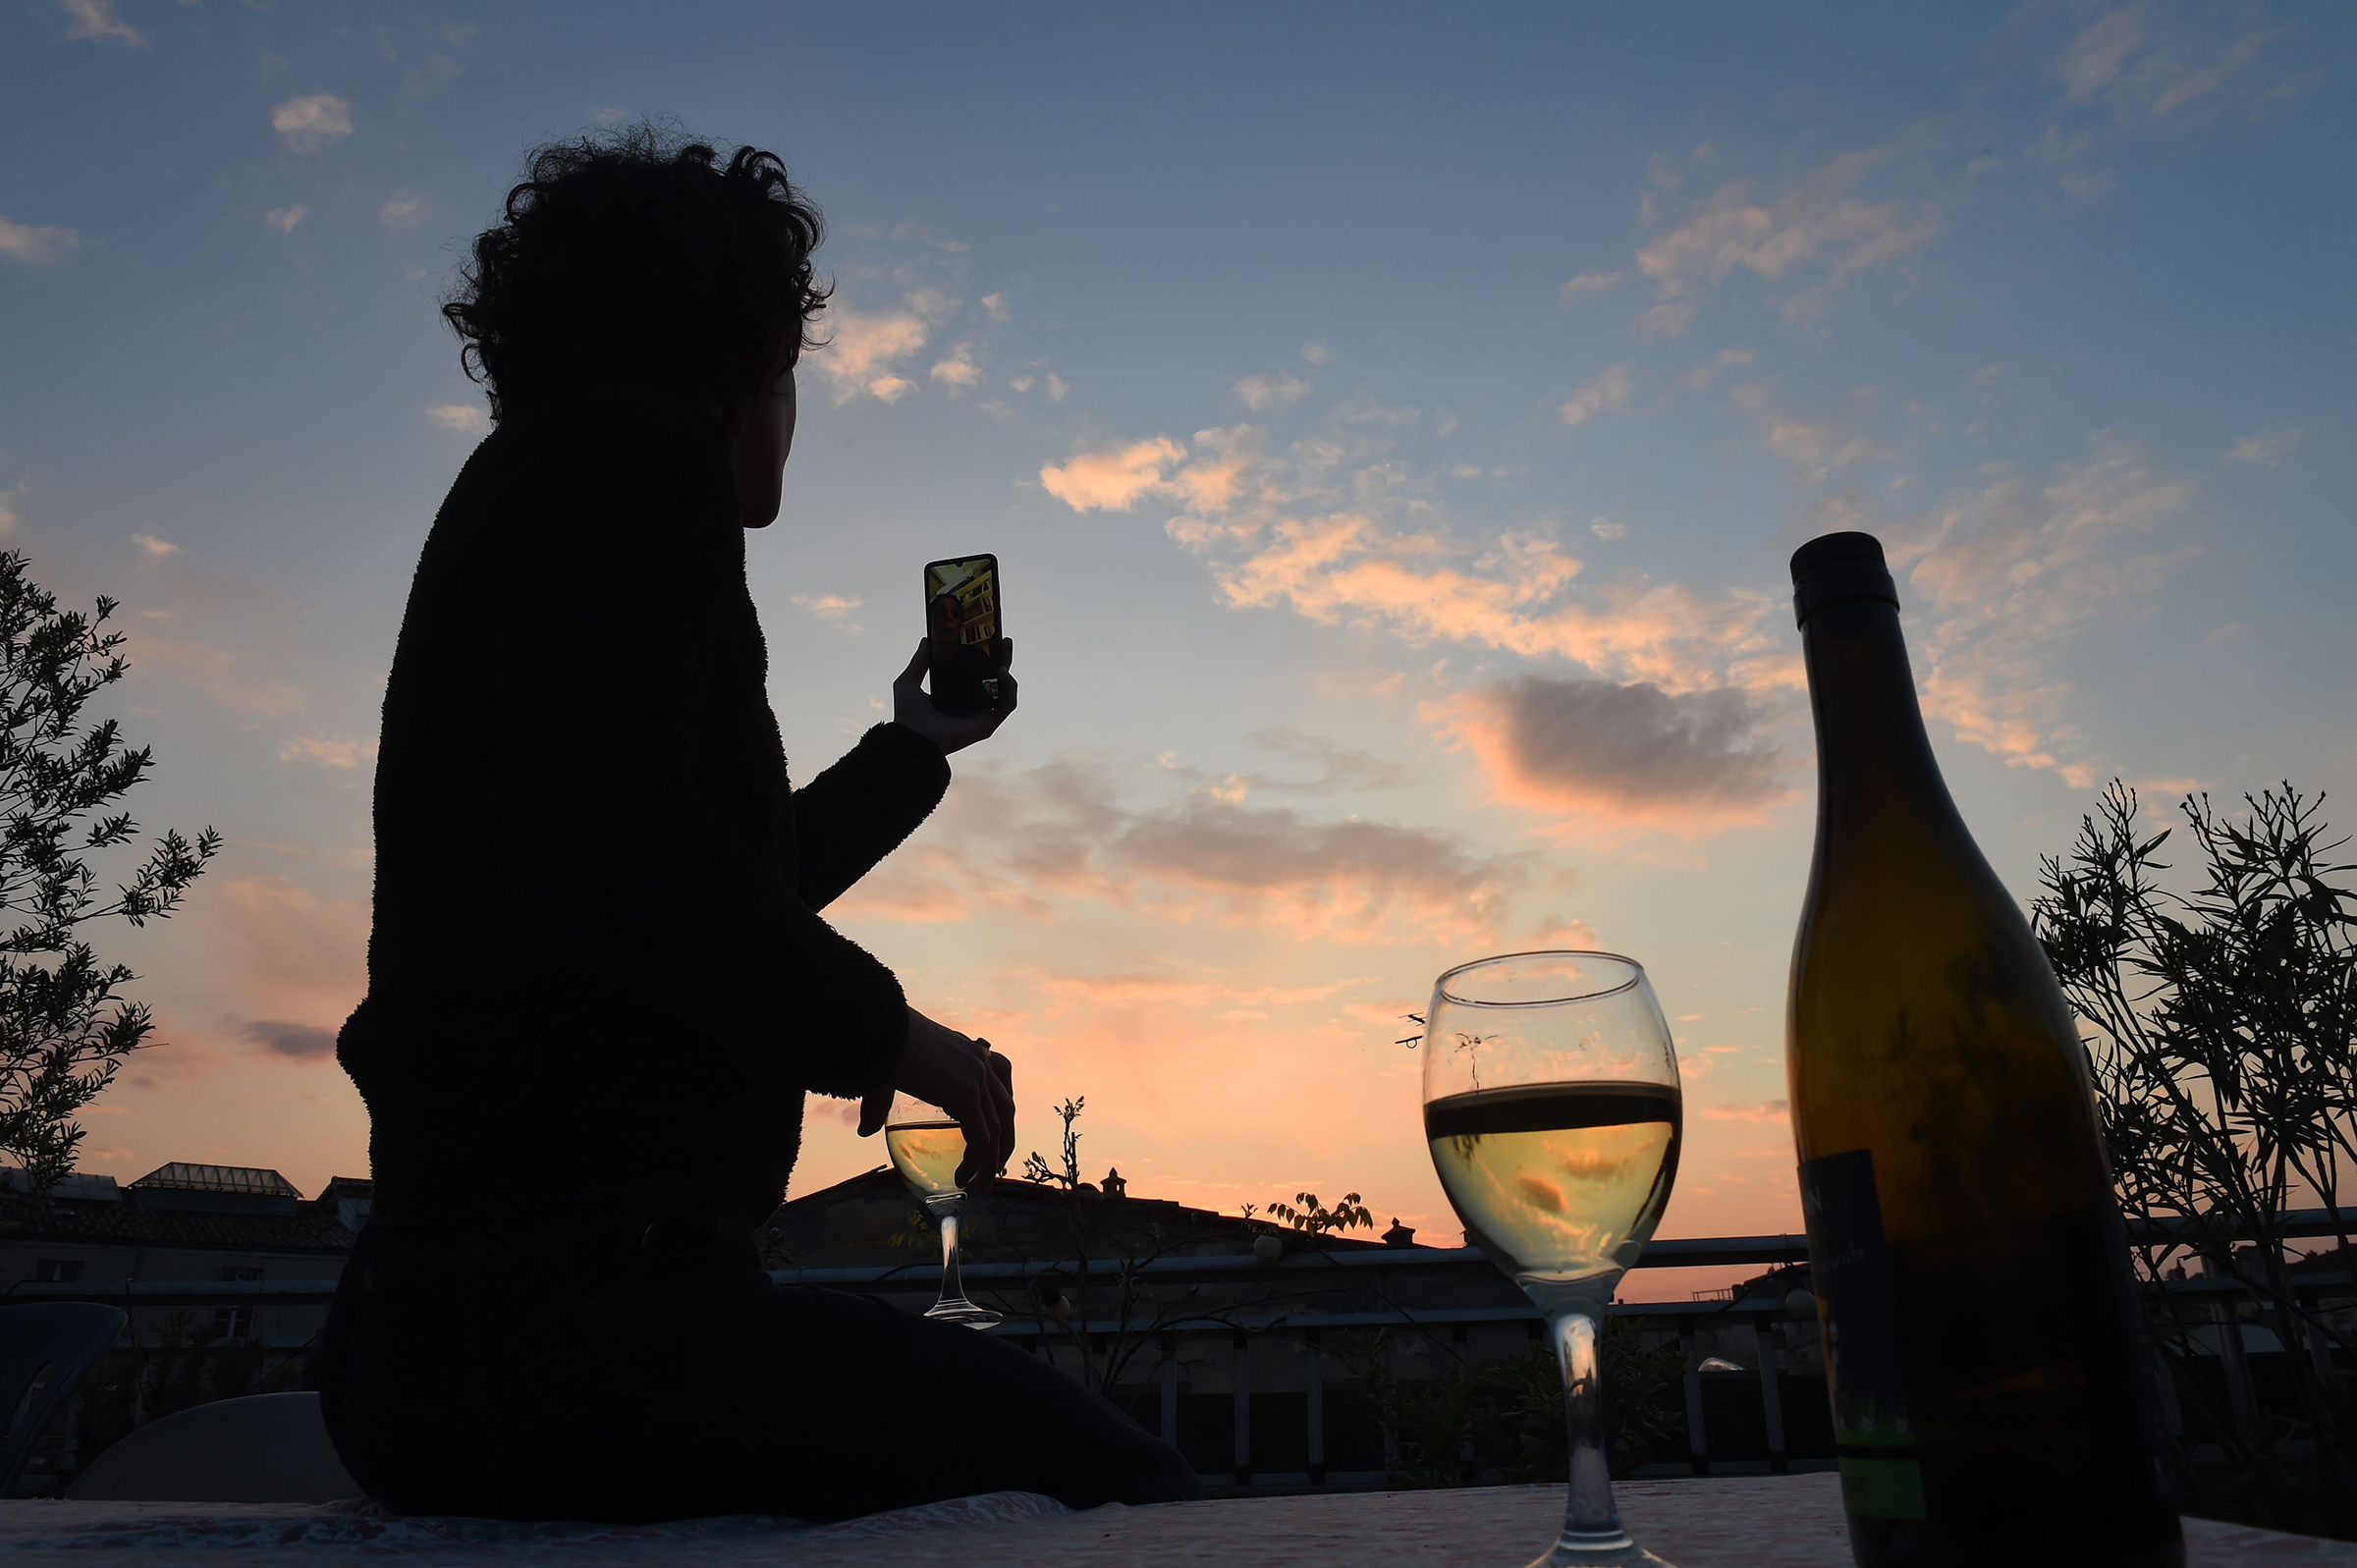 A woman drinks a glass of wine as she speaks and shares a drink with friends via a video call on March 26 in Bordeaux, southwestern France, in the evening on the tenth day of a lockdown aimed at curbing the spread of the COVID-19 in France